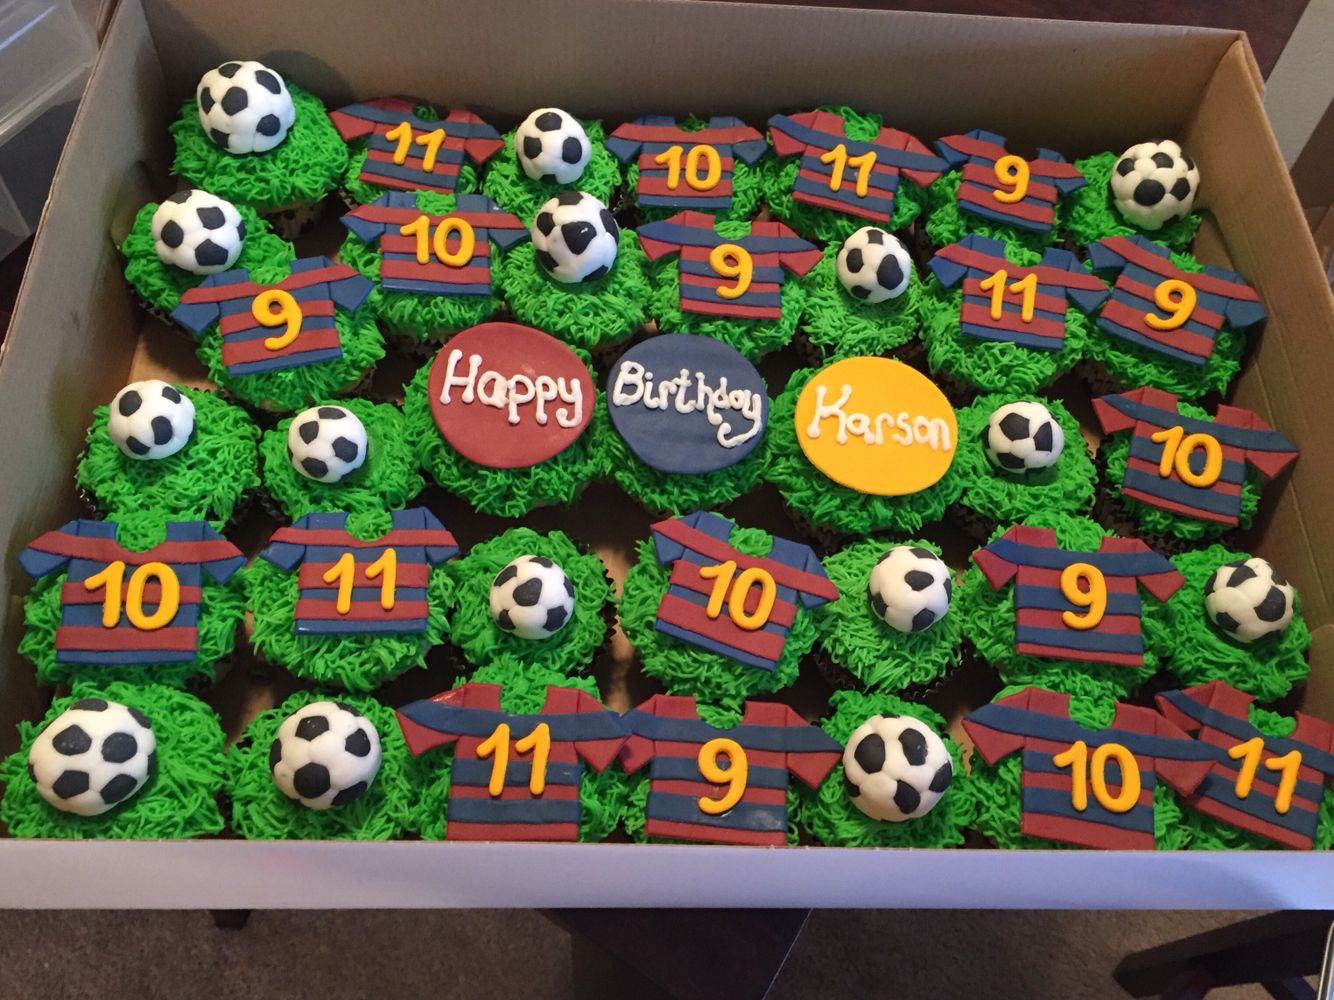 Soccer Cupcakes Vanilla And Chocolate Cupcakes Buttercream Green Grass And Fondant Decoratio Soccer Cupcakes Soccer Ball Cake Vanilla And Chocolate Cupcakes